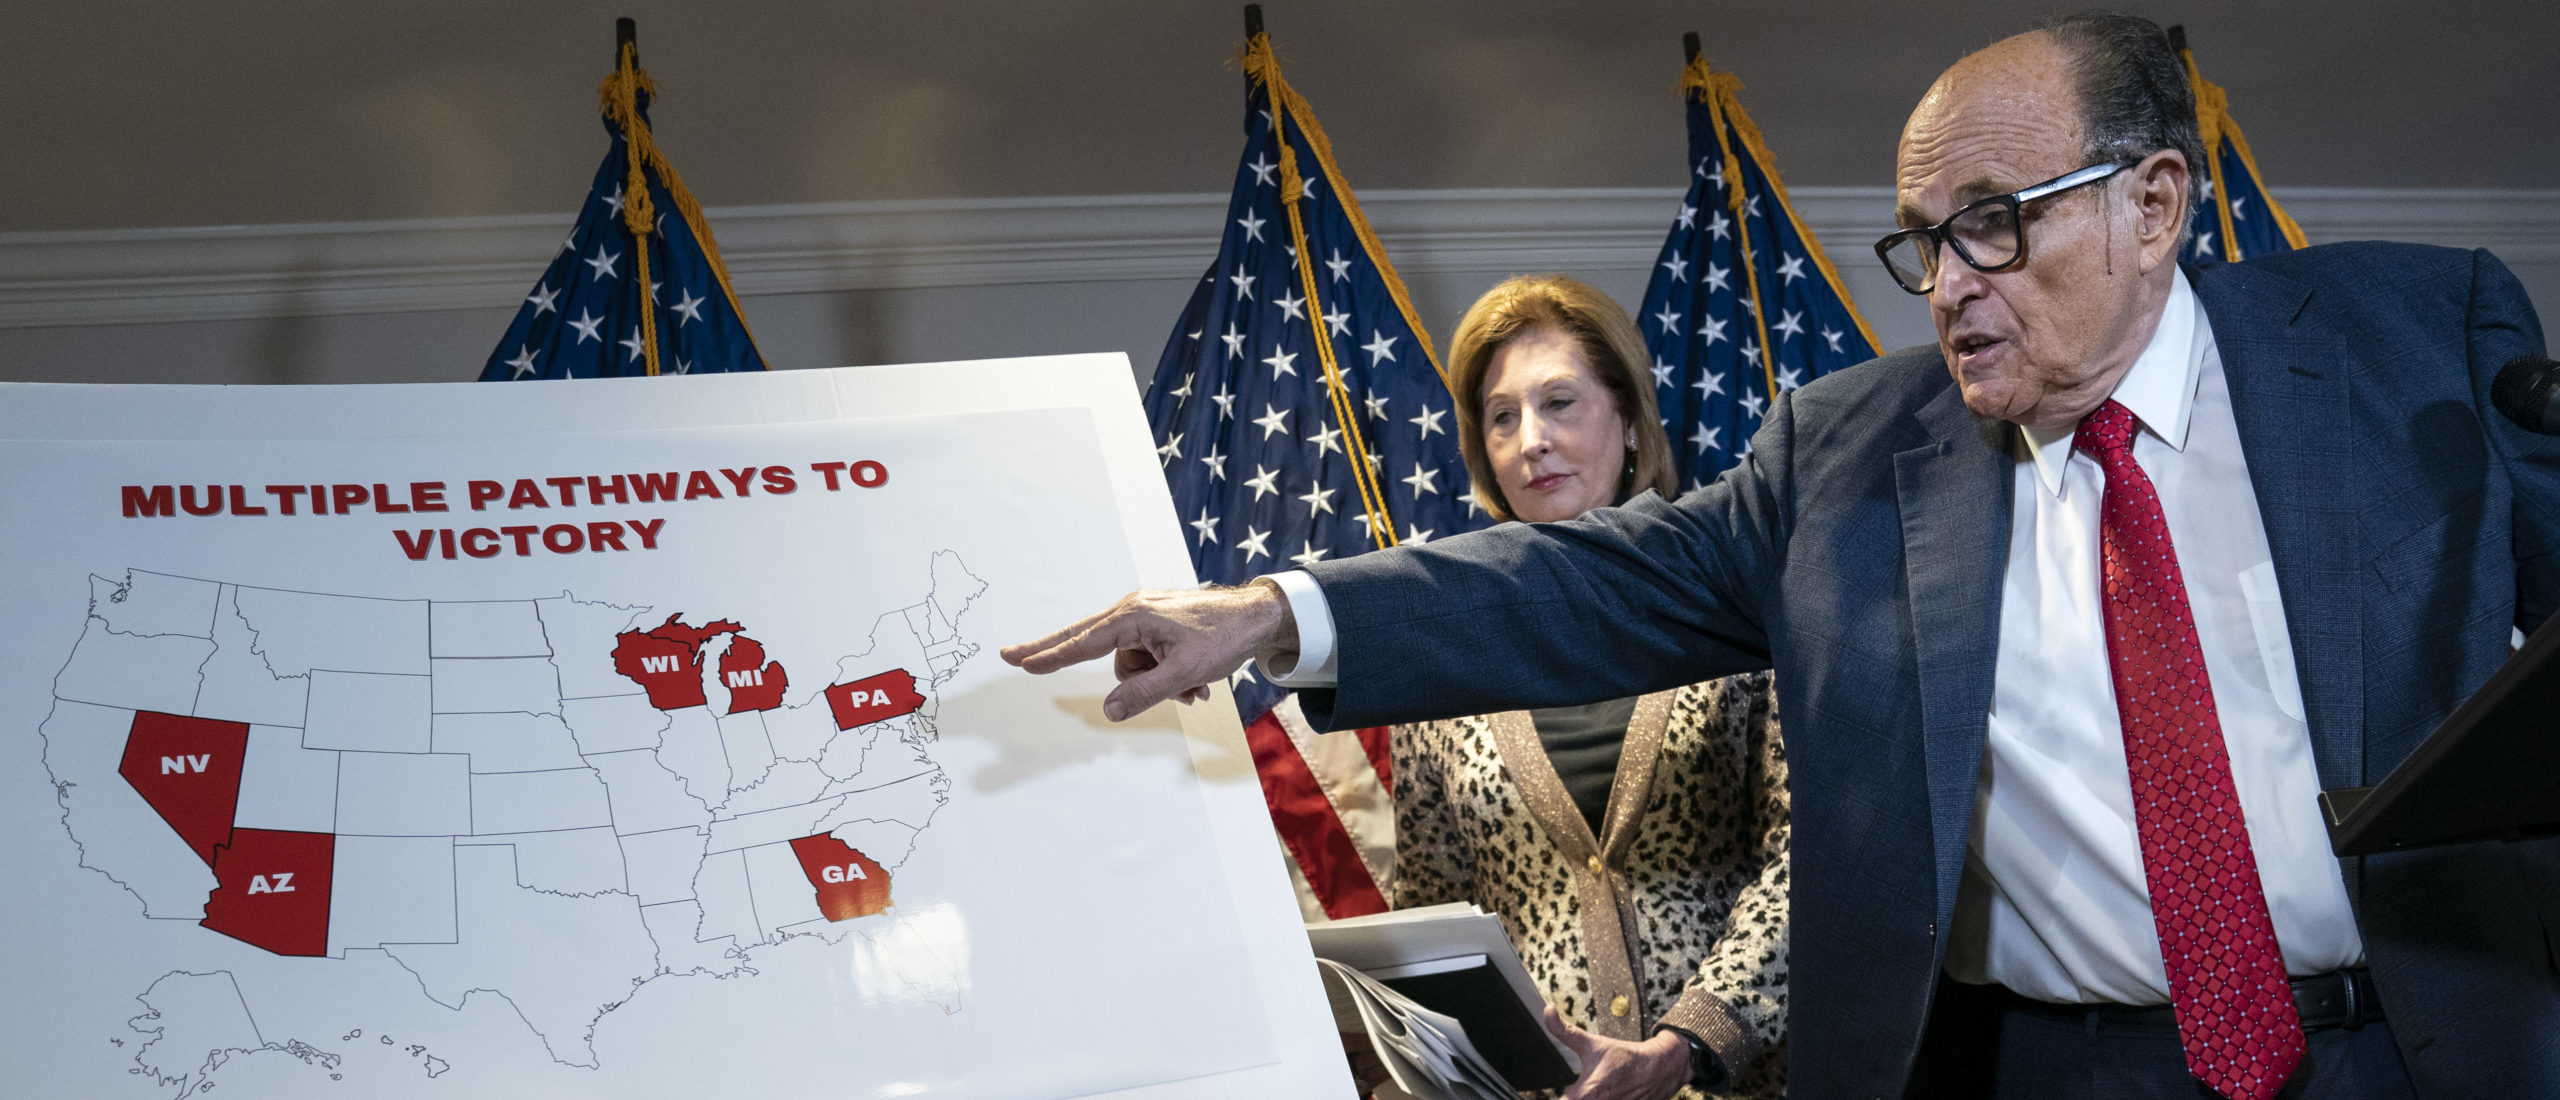 WASHINGTON, DC - NOVEMBER 19: Rudy Giuliani points to a map as he speaks to the press about various lawsuits related to the 2020 election, inside the Republican National Committee headquarters on November 19, 2020 in Washington, DC. President Donald Trump, who has not been seen publicly in several days, continues to push baseless claims about election fraud and dispute the results of the 2020 United States presidential election. Also pictured, at center, is attorney Sidney Powell. (Photo by Drew Angerer/Getty Images)